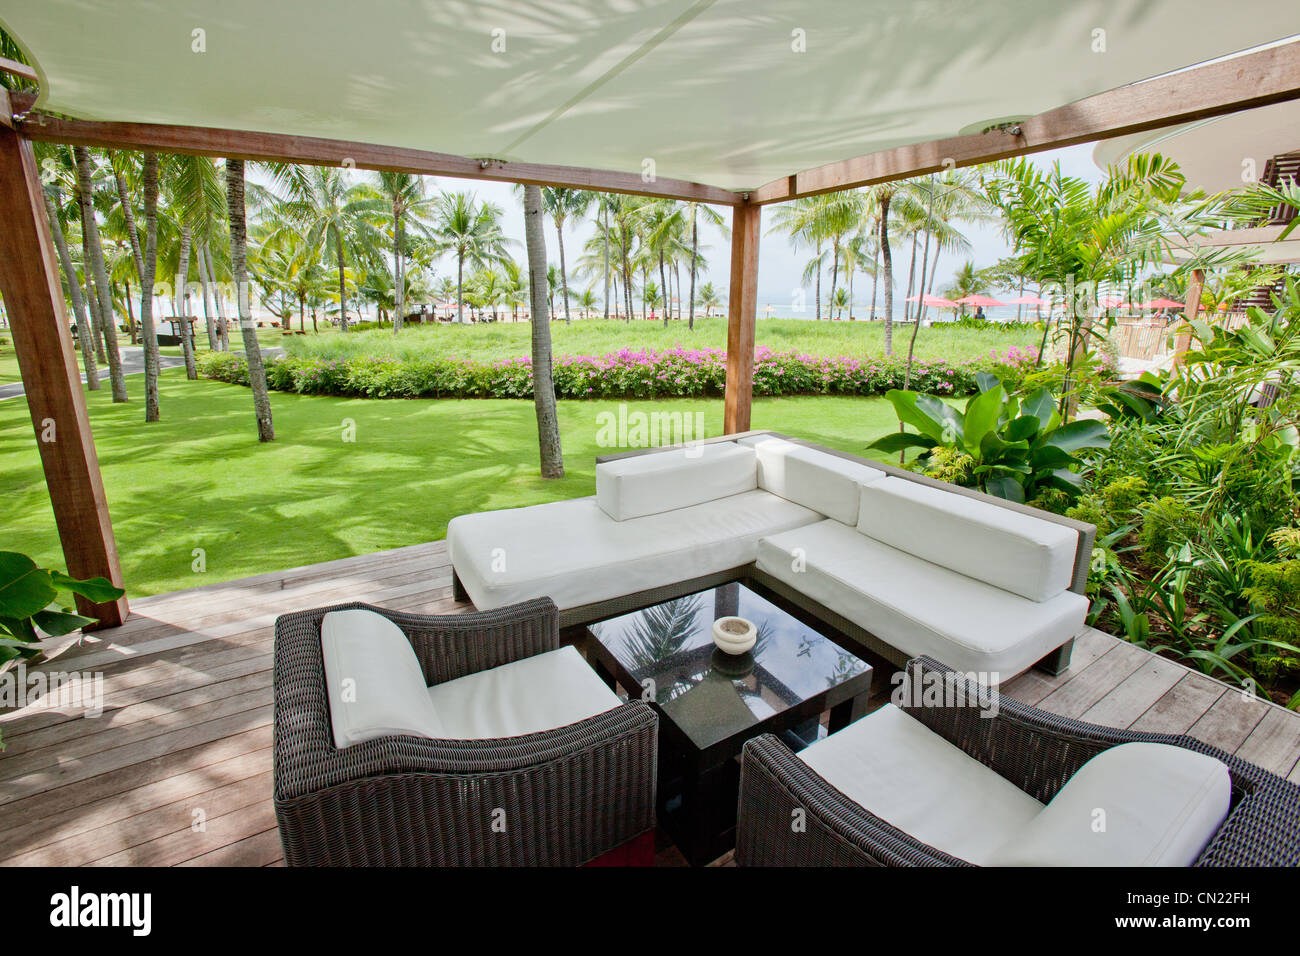 Club Med Bali Indonesia - Stock Image